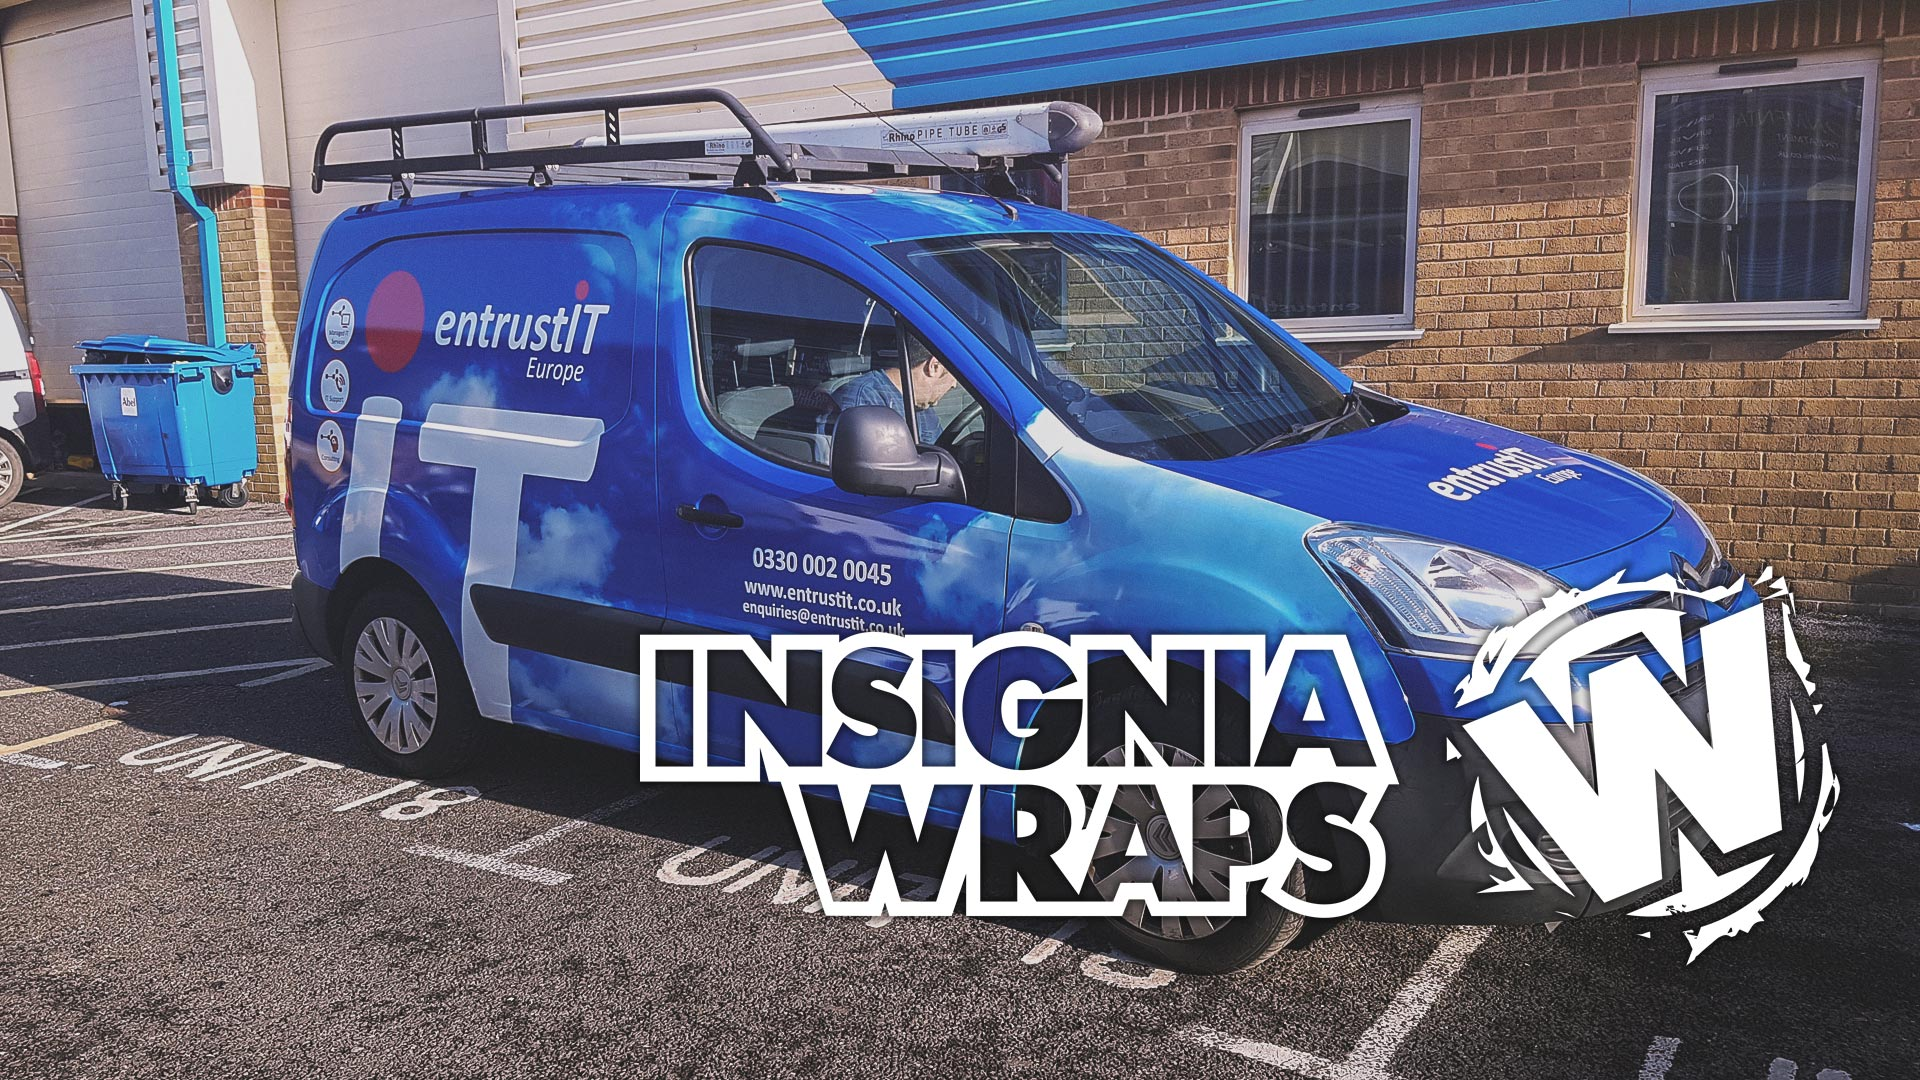 Insignia Wraps - Wraps Work - Entrust Van